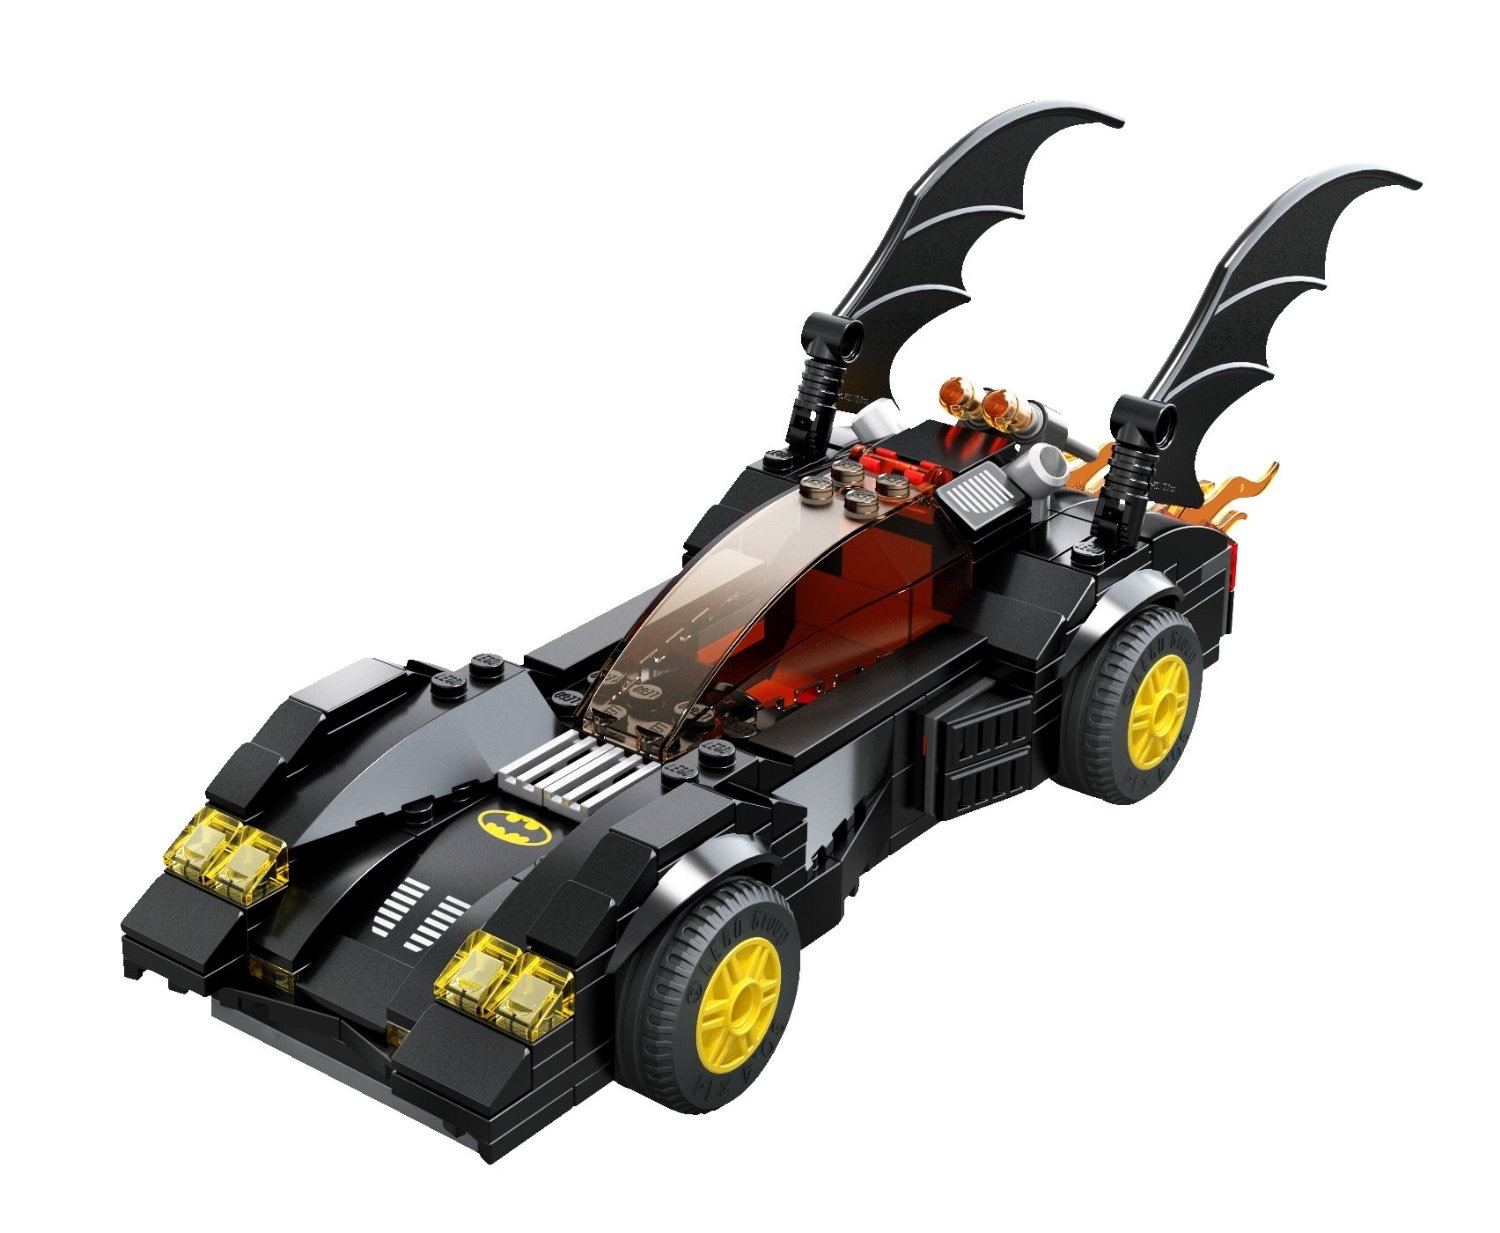 Batmobile | Lego Marvel and DC Superheroes Wiki | FANDOM powered by